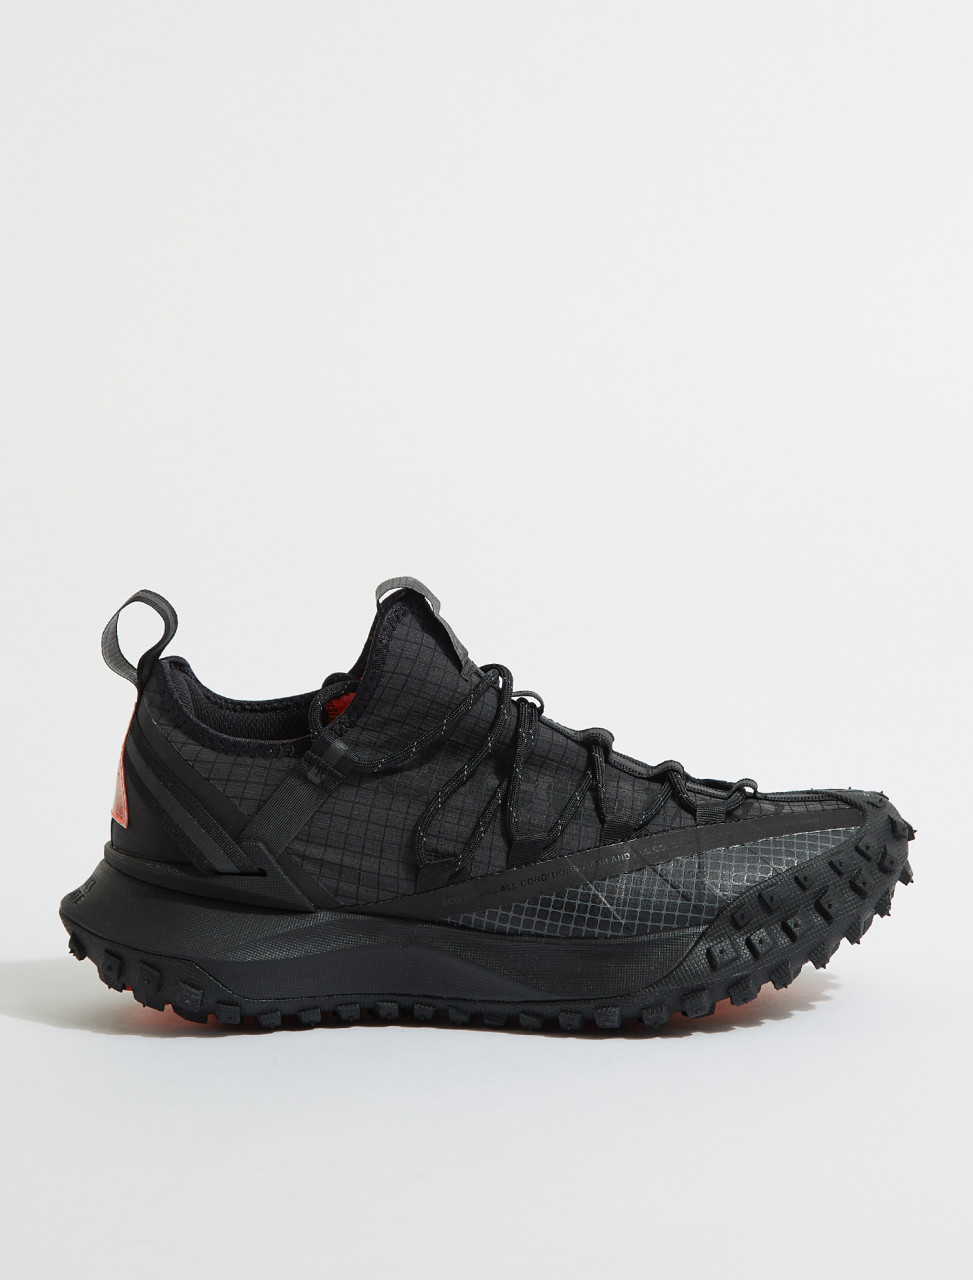 DA5424-001 NIKE ACG MOUNTAIN FLY LOW IN ANTHRACITE & BLACK